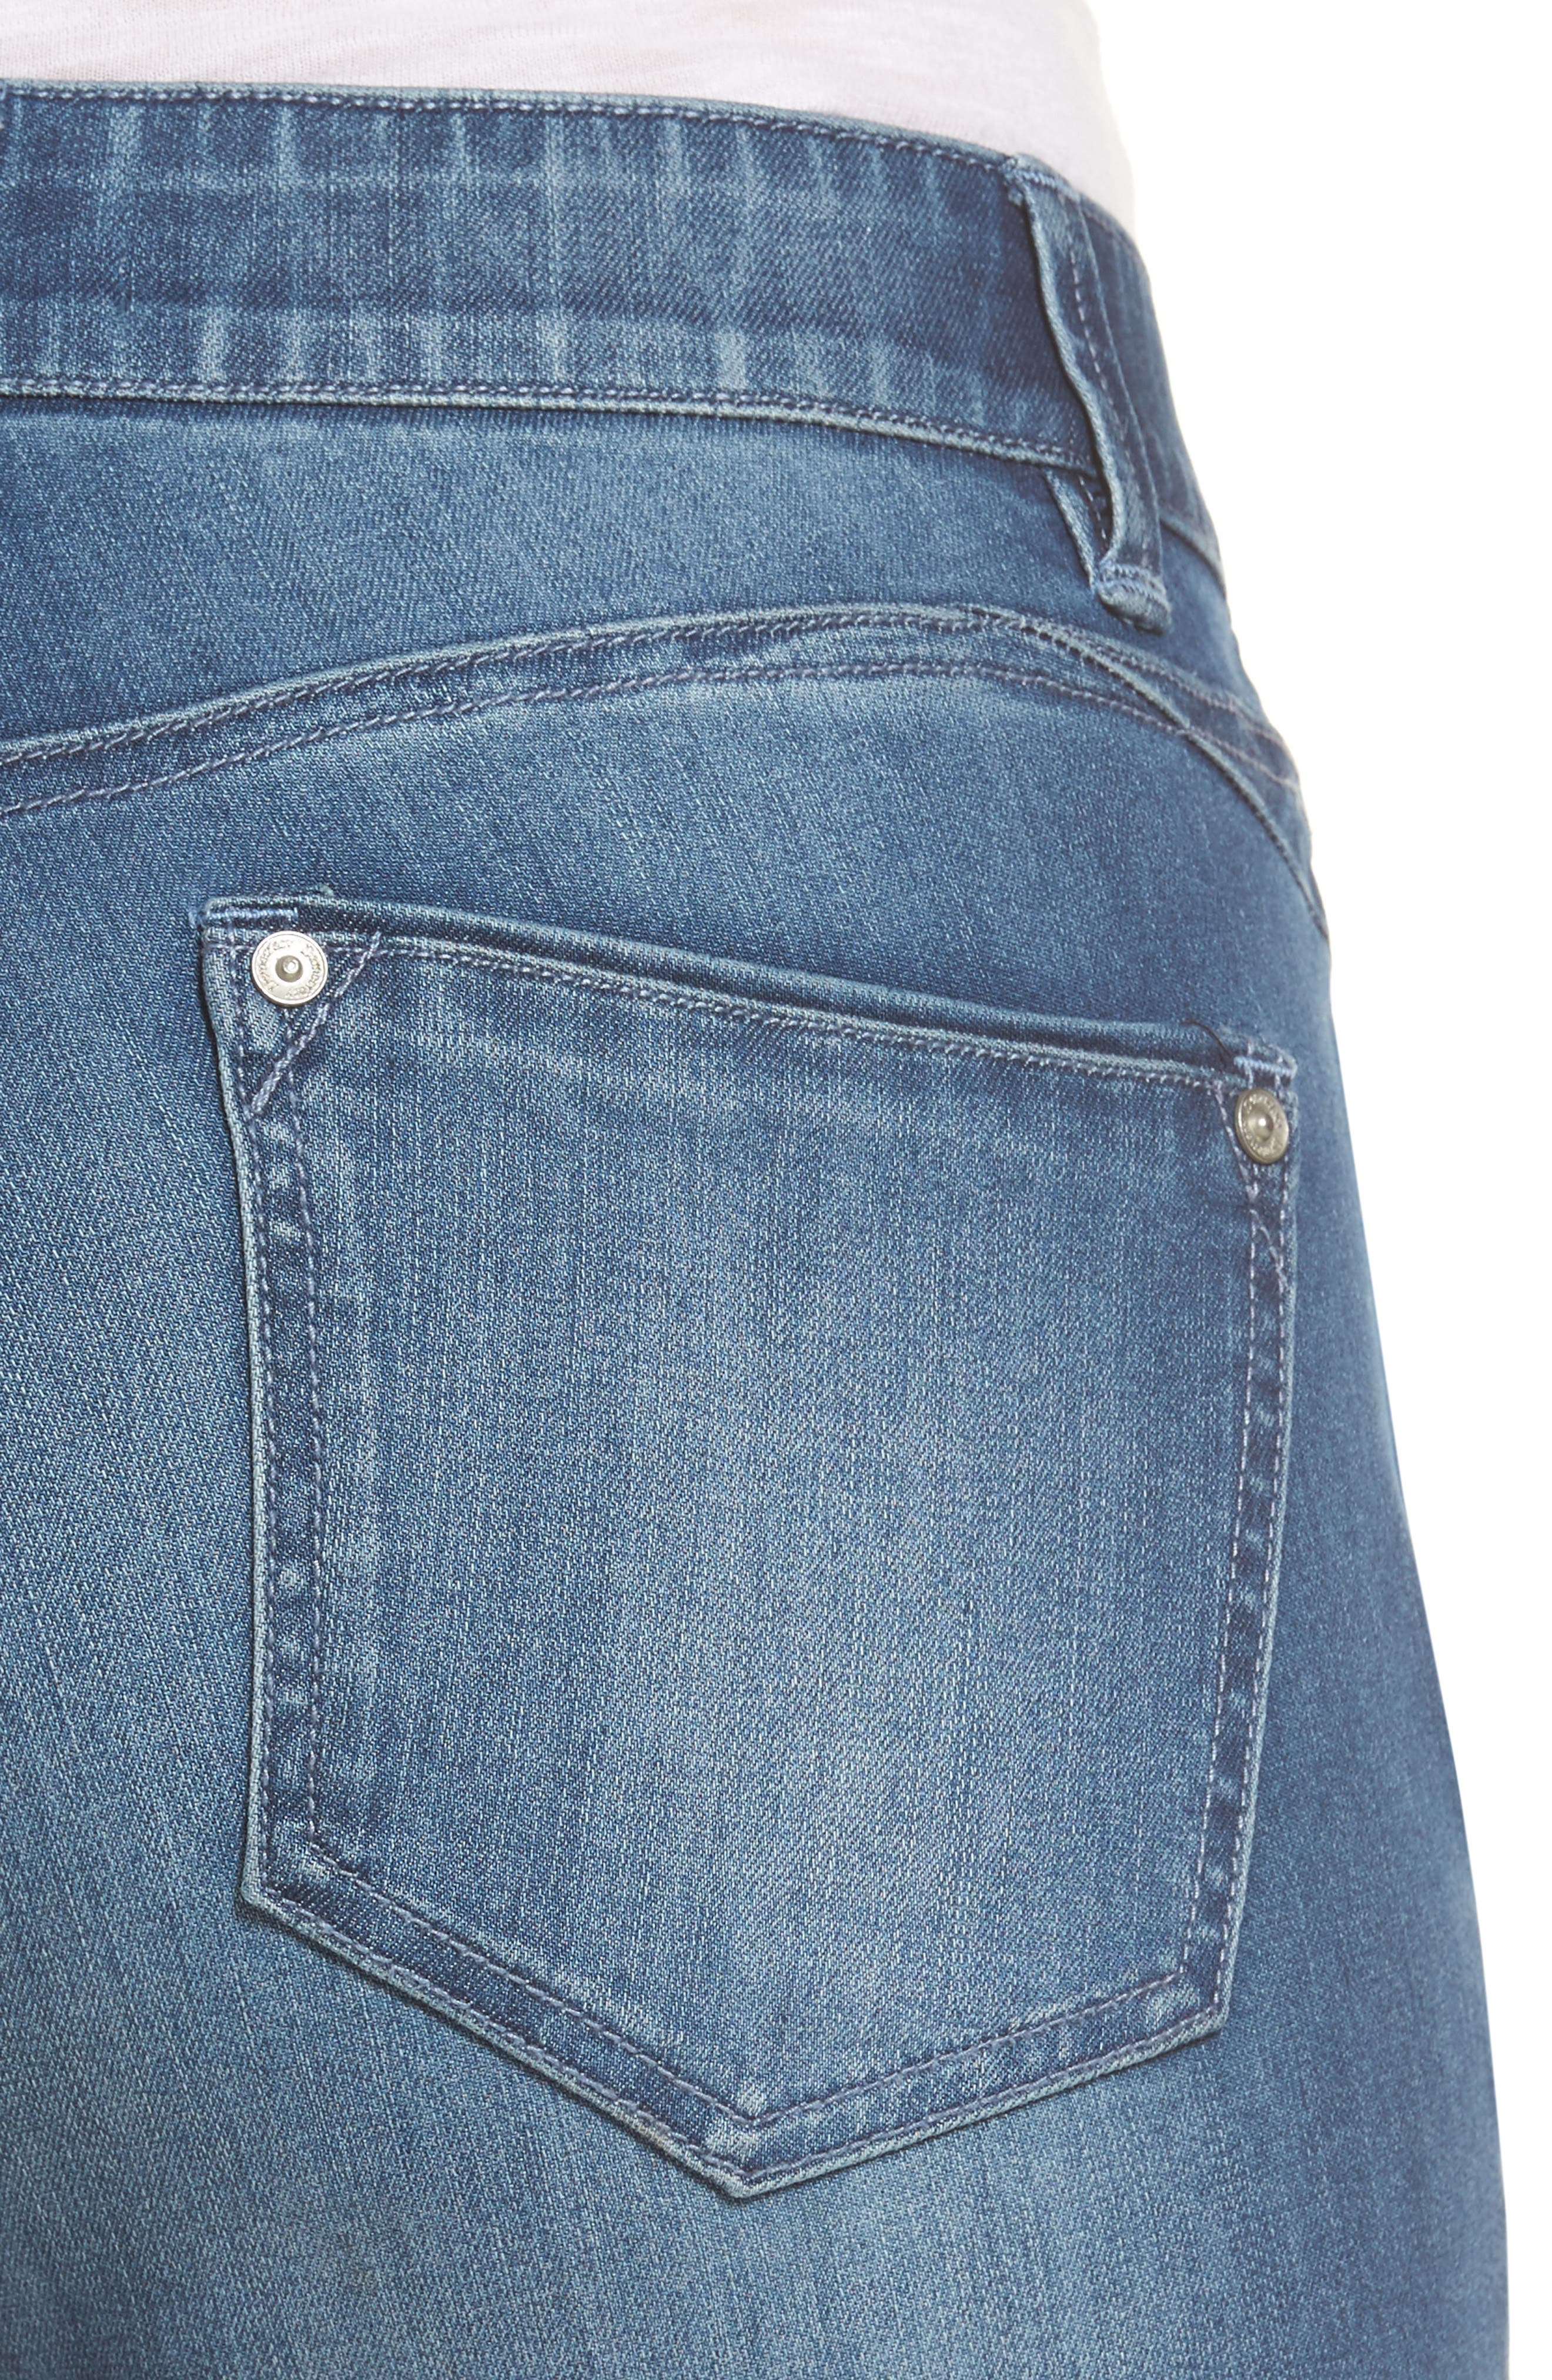 Alternate Image 4  - Wit & Wisdom Ab-solution Stretch Ankle Skinny Jeans (Regular & Petite) (Nordstrom Exclusive)